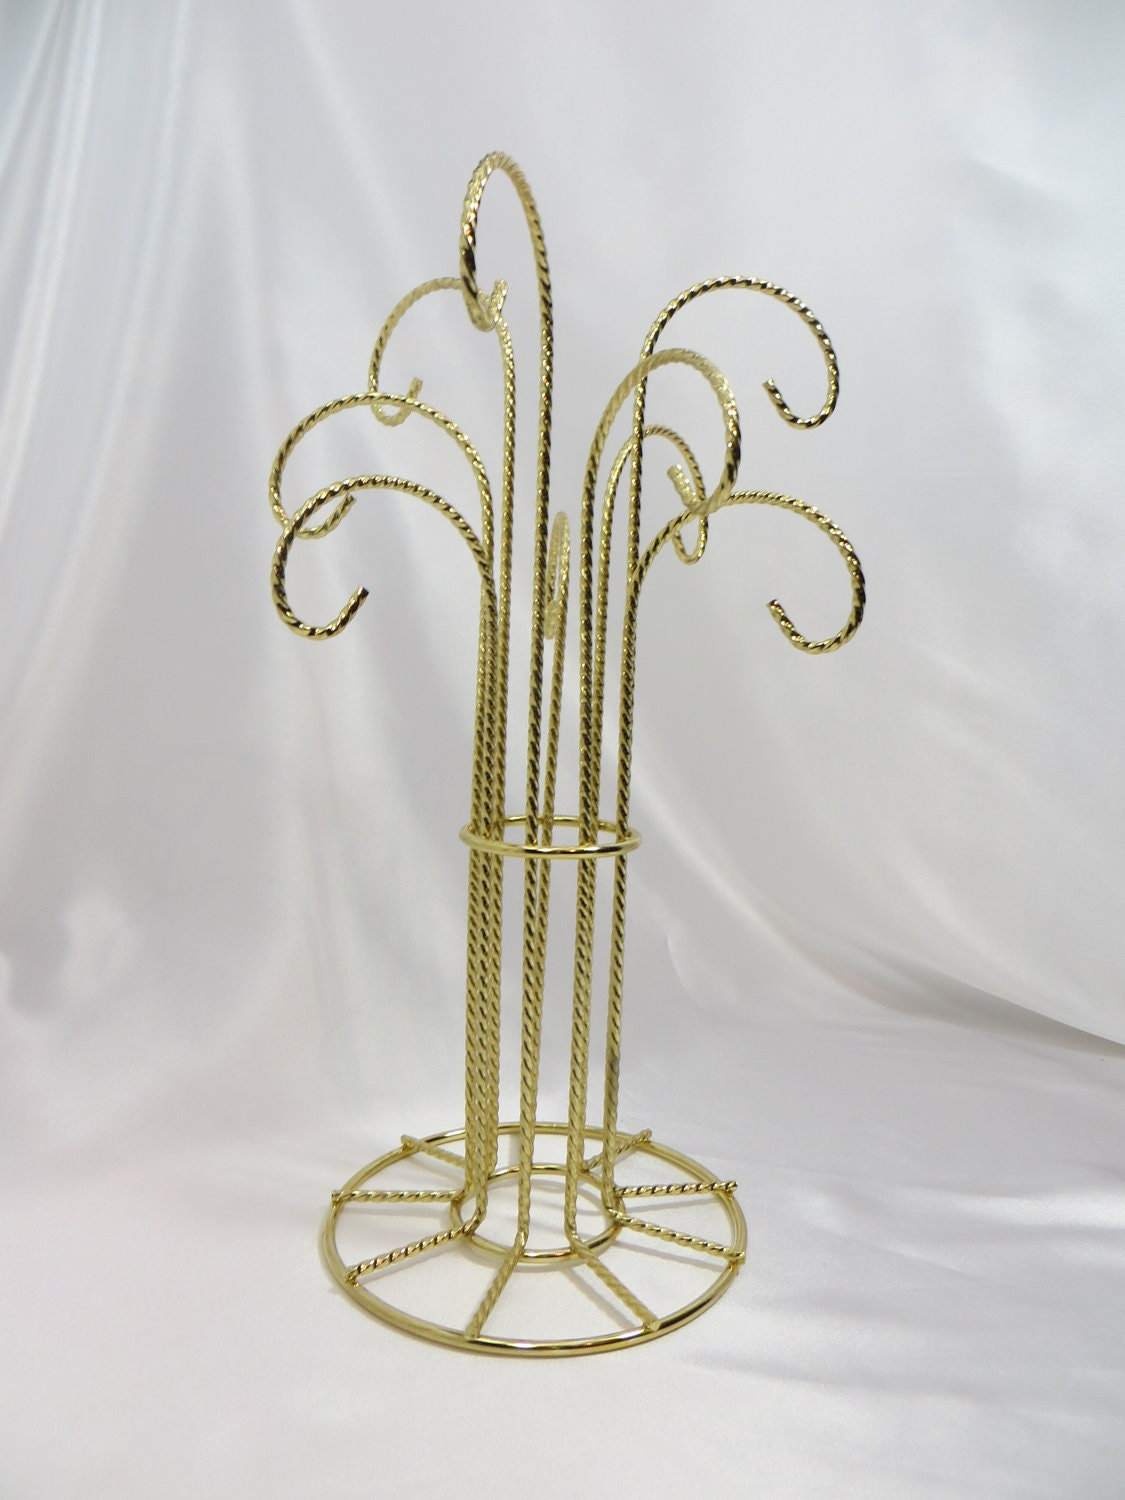 Arm ornament tree stand or jewelry display by odysseycreations